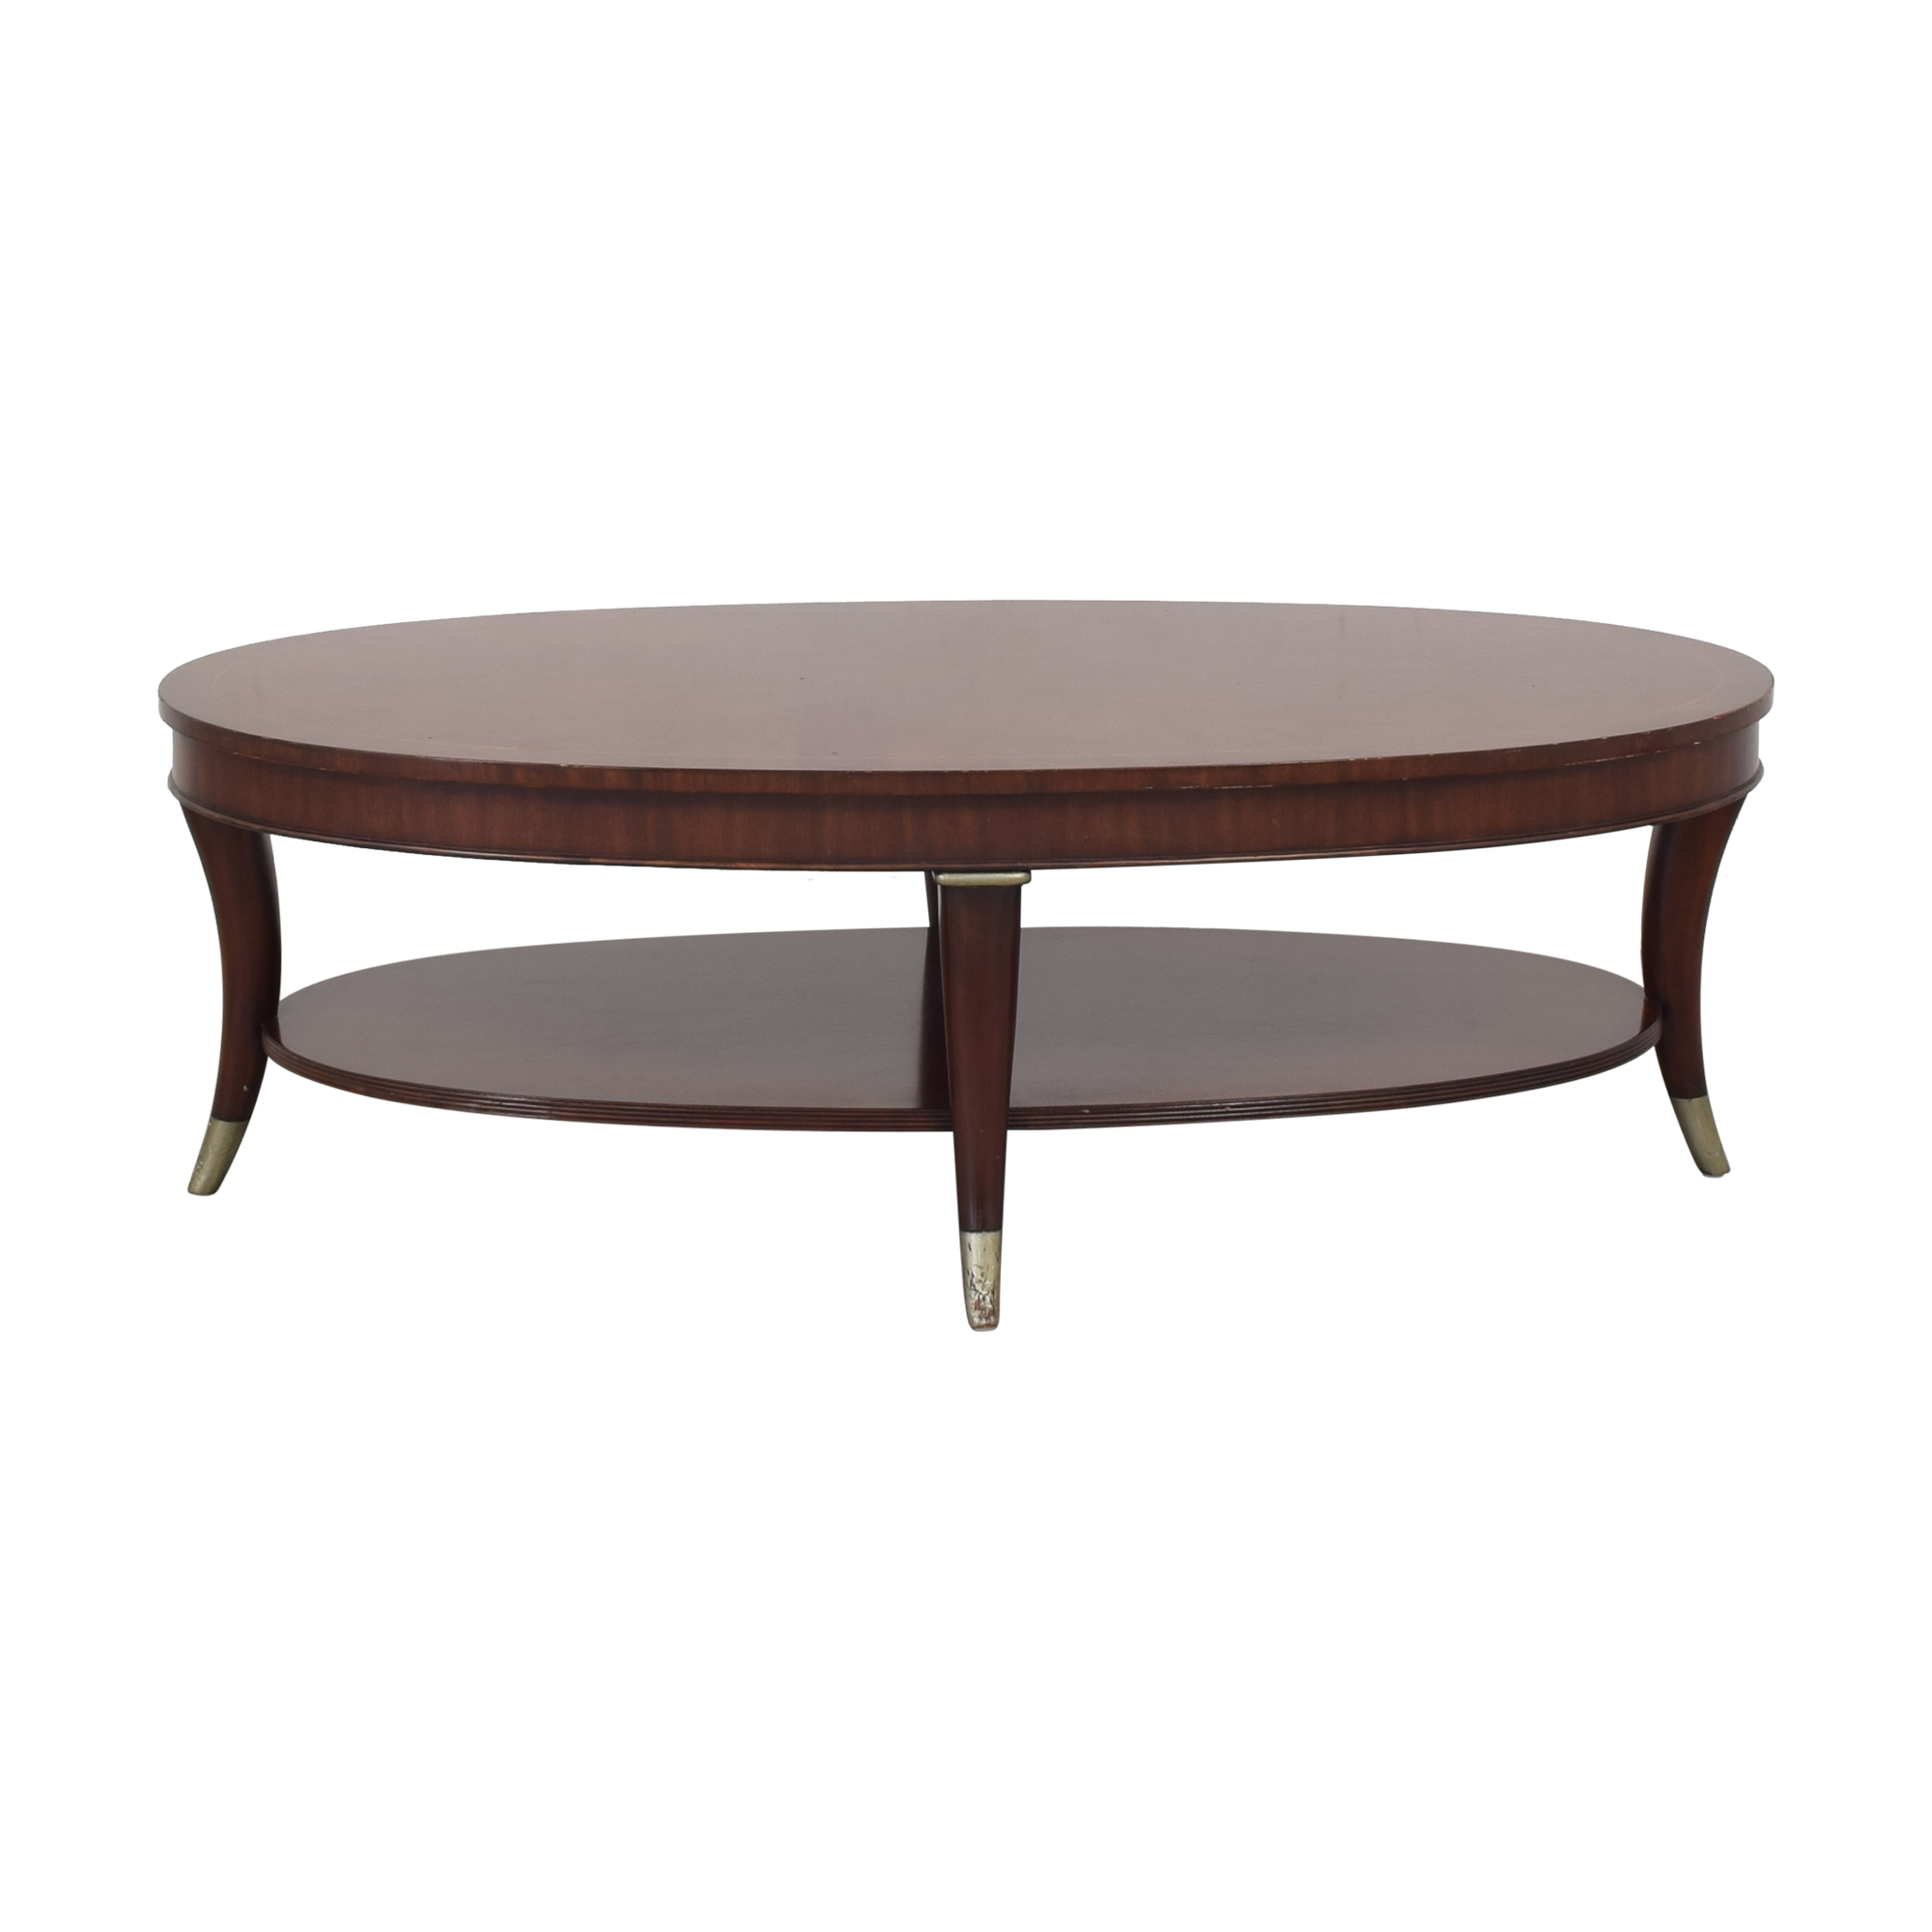 buy Thomasville Thomasville Oval Coffee Table online